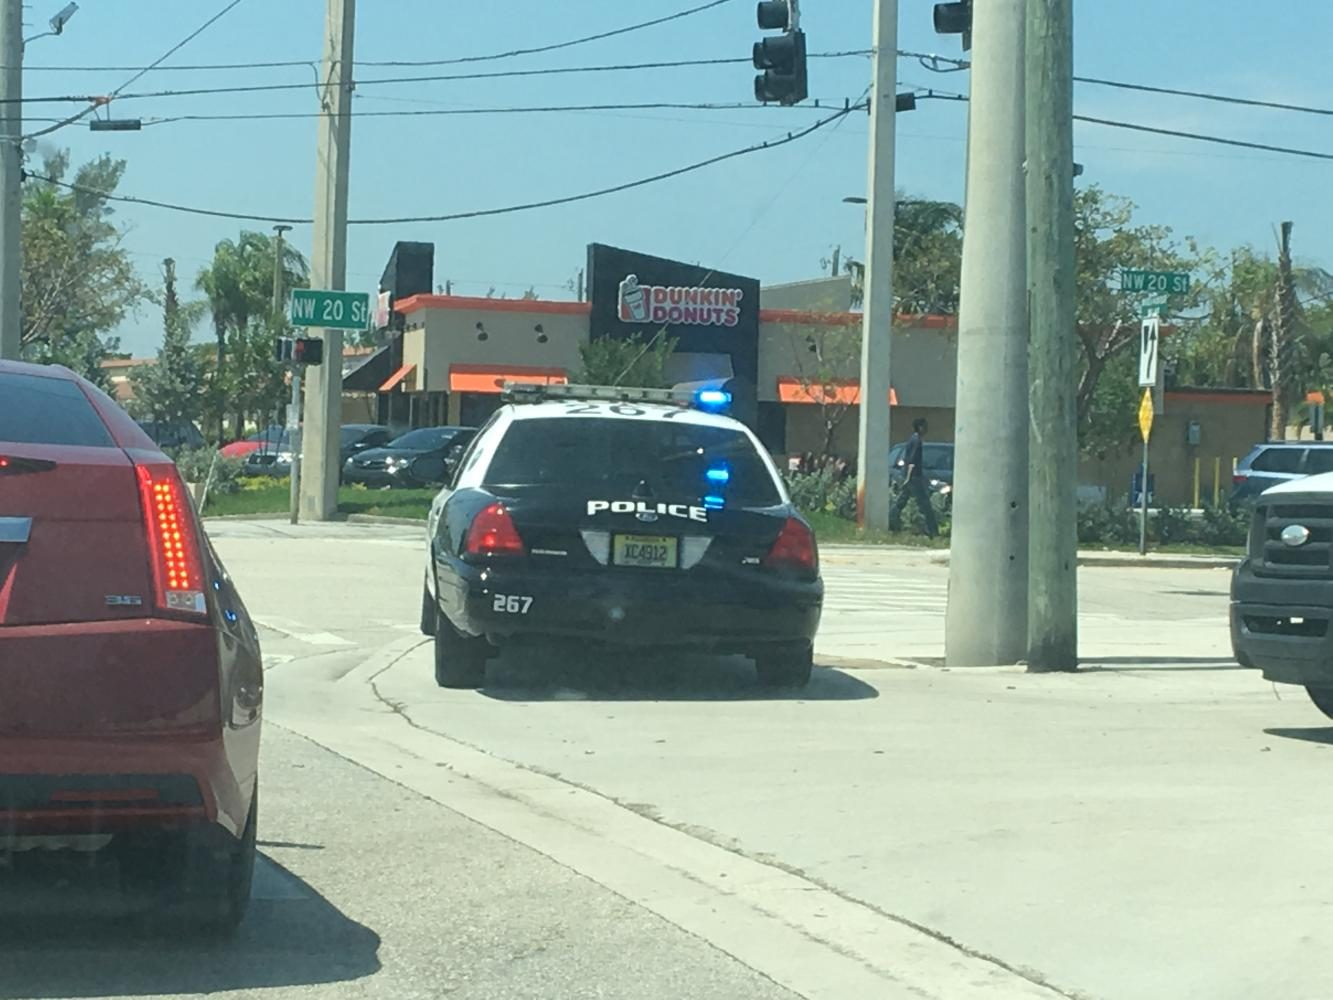 A+Boca+Raton+police+cruiser+sits+at+the+intersection+of+20th+and+2nd+Street+Friday+while+the+department+looks+for+a+suspect+in+the+area.+Joe+Pye+%7C+News+Editor